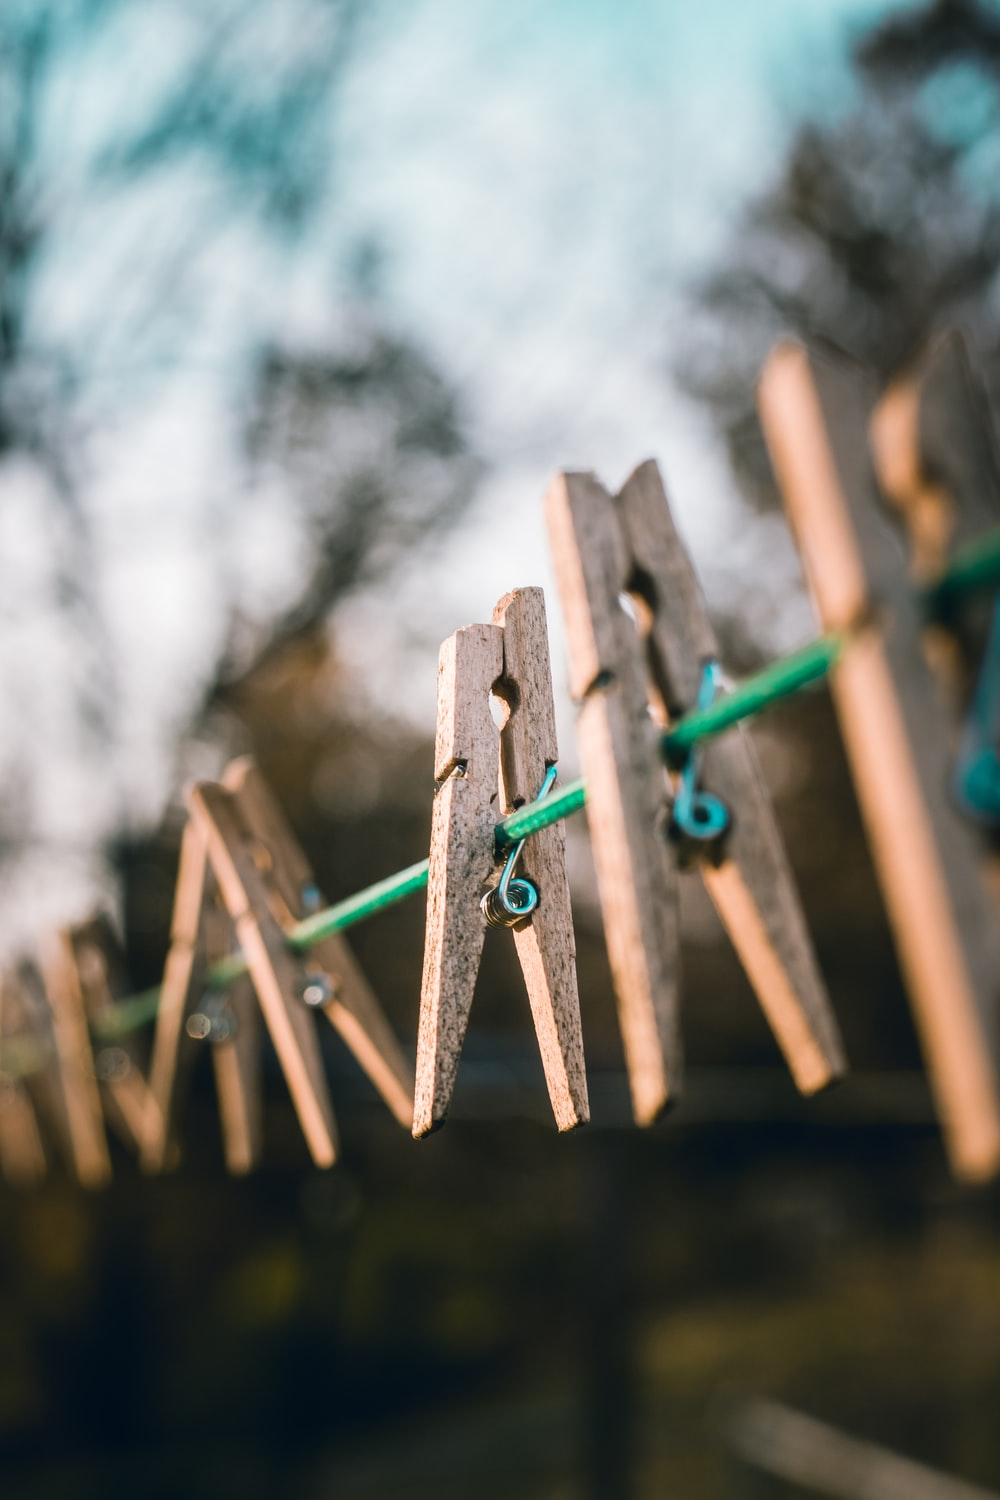 selective focus photography of brown clothes clips hanged on green cable outdoor at daytime